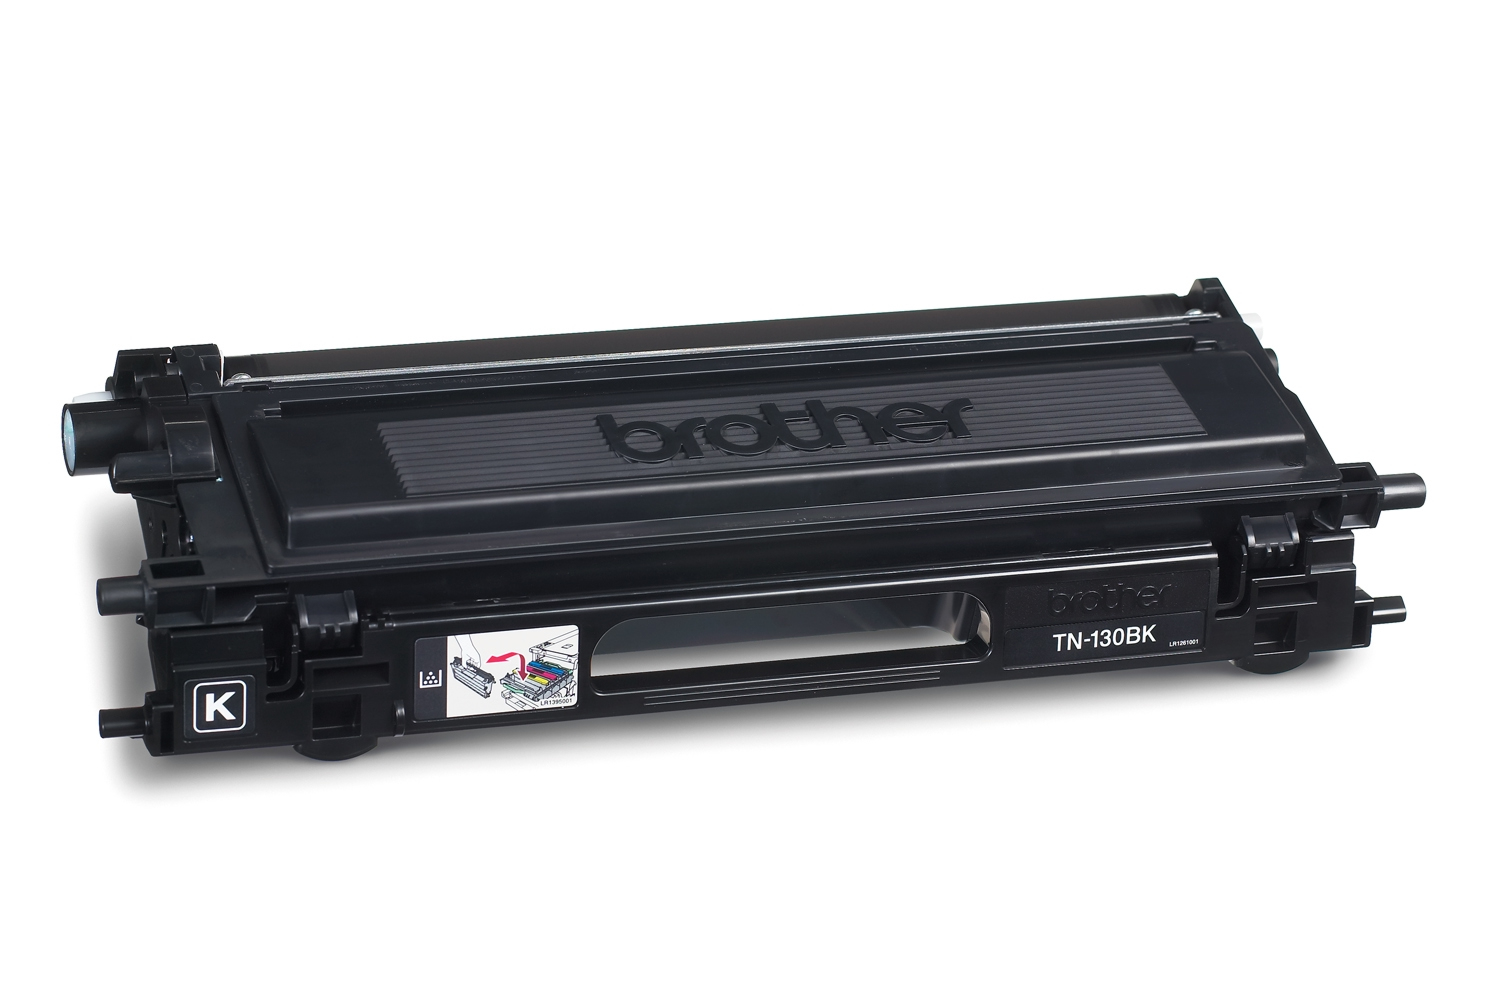 Remanufactured Brother TN130BK Toner Cartridge Black 5K TN130BK - rem01